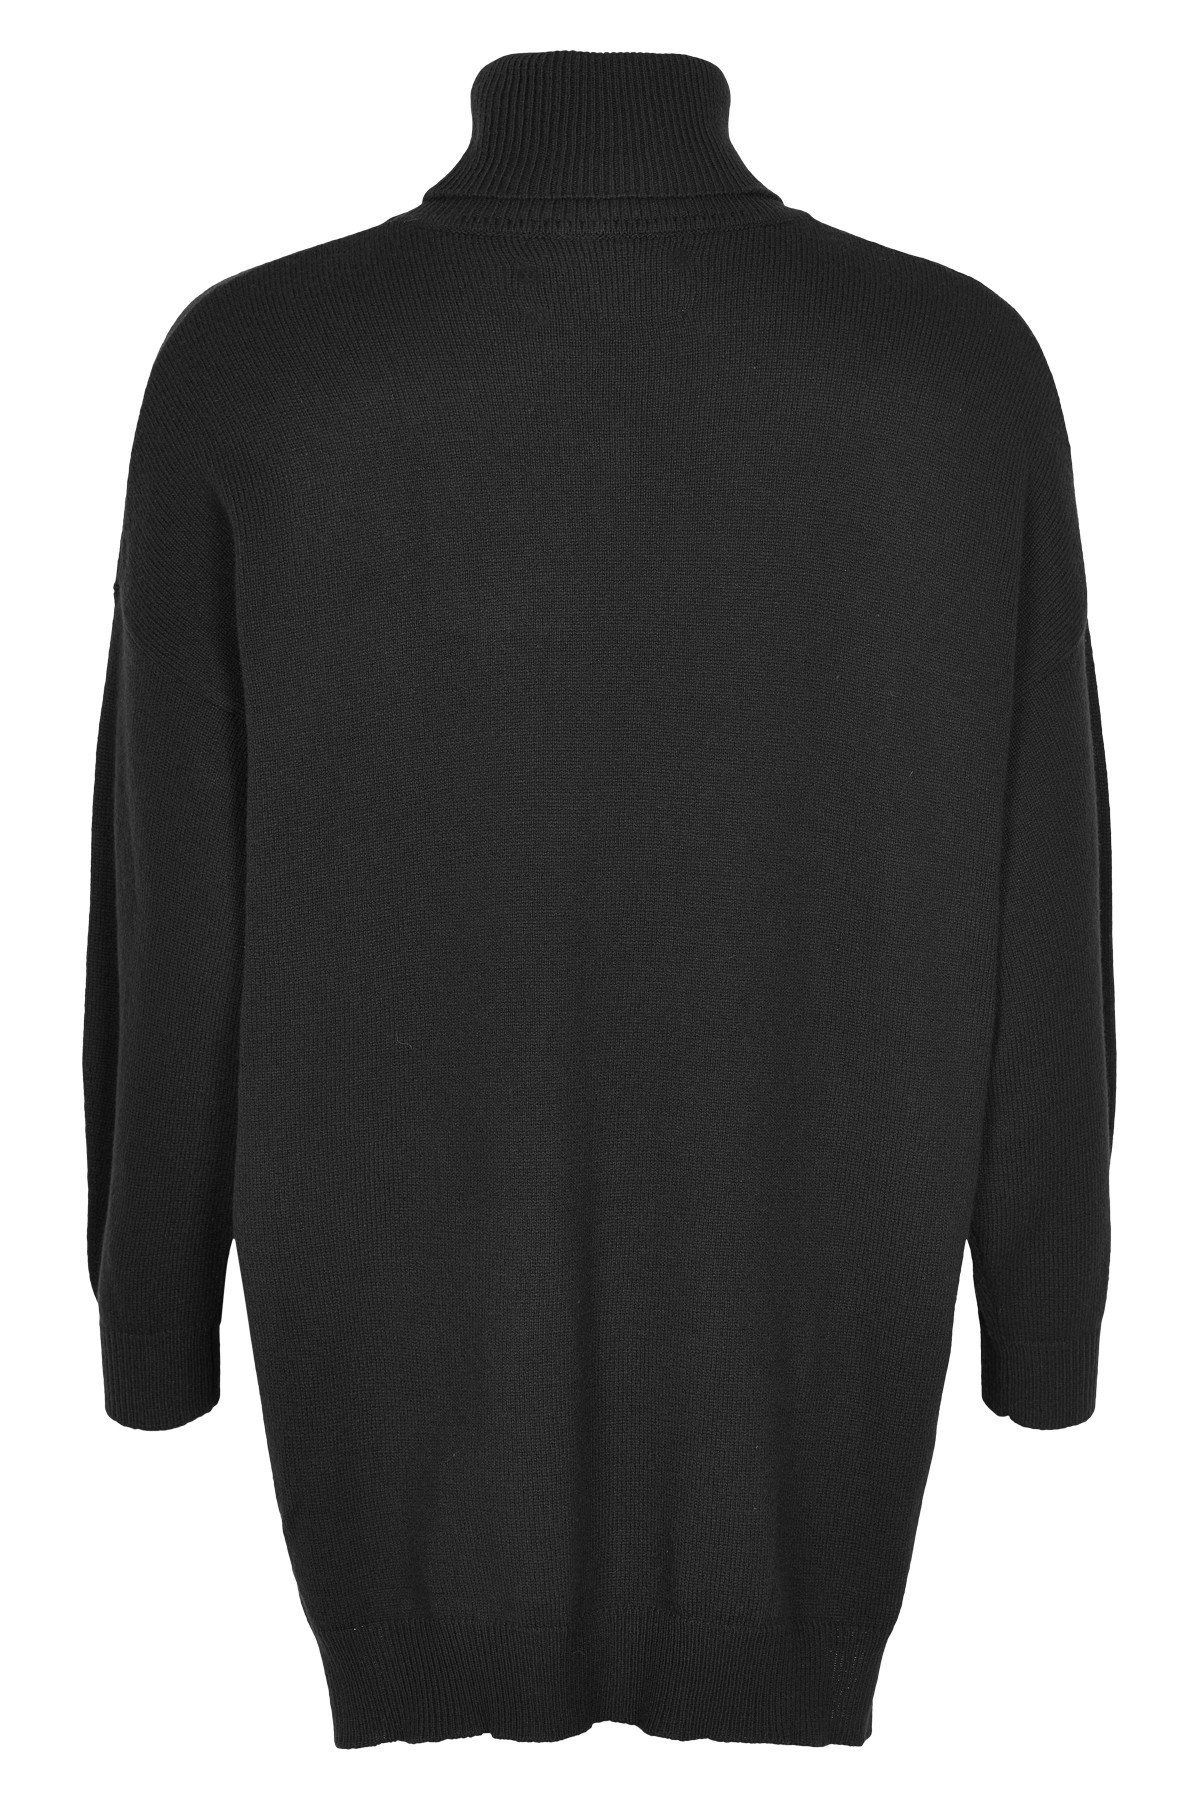 Image of   AND LESS ALLESHA PULLOVER 5519214 C (Caviar, XS)